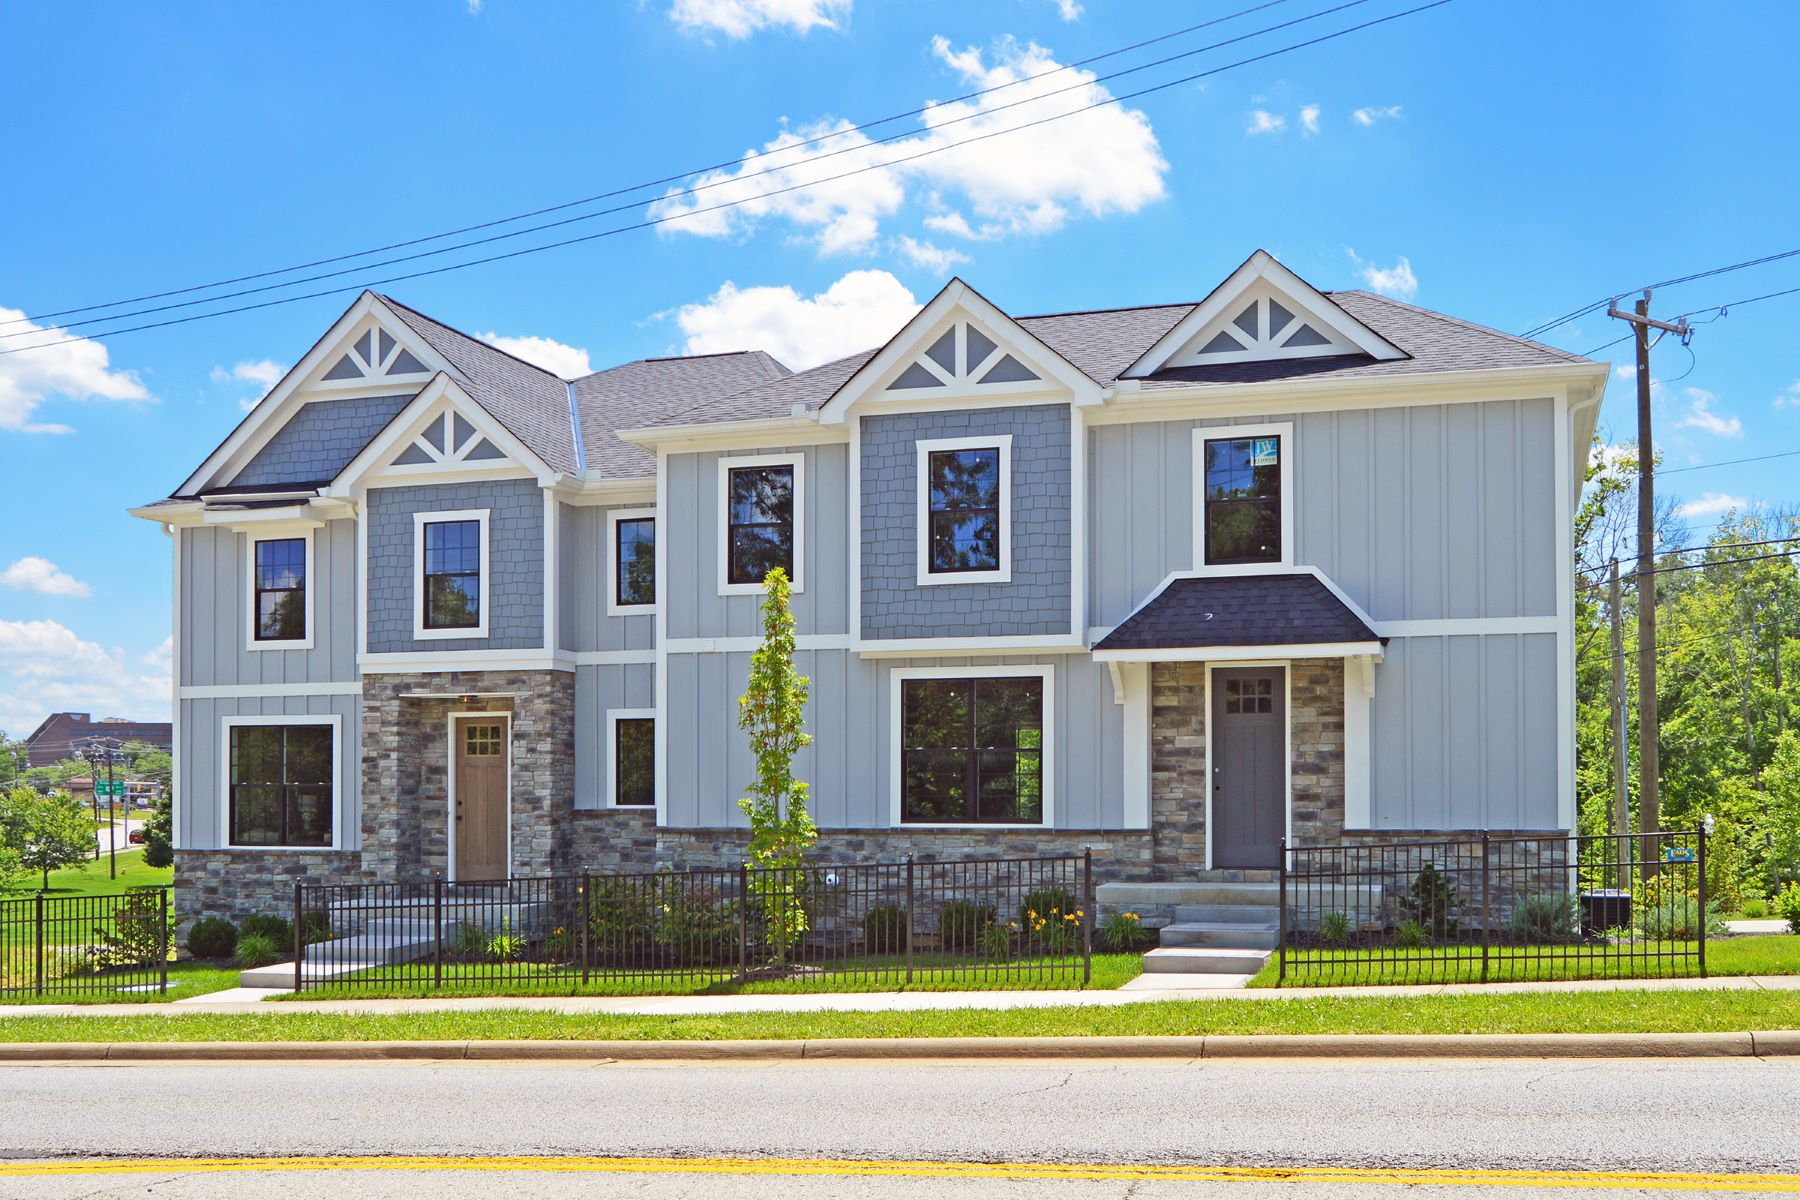 townhouses のために 売買 アット Blue Ash's premiere Lifestyle community built by Cedar Hill Custom Homes 9332 Old Plainfield Rd., Blue Ash, オハイオ 45236 アメリカ